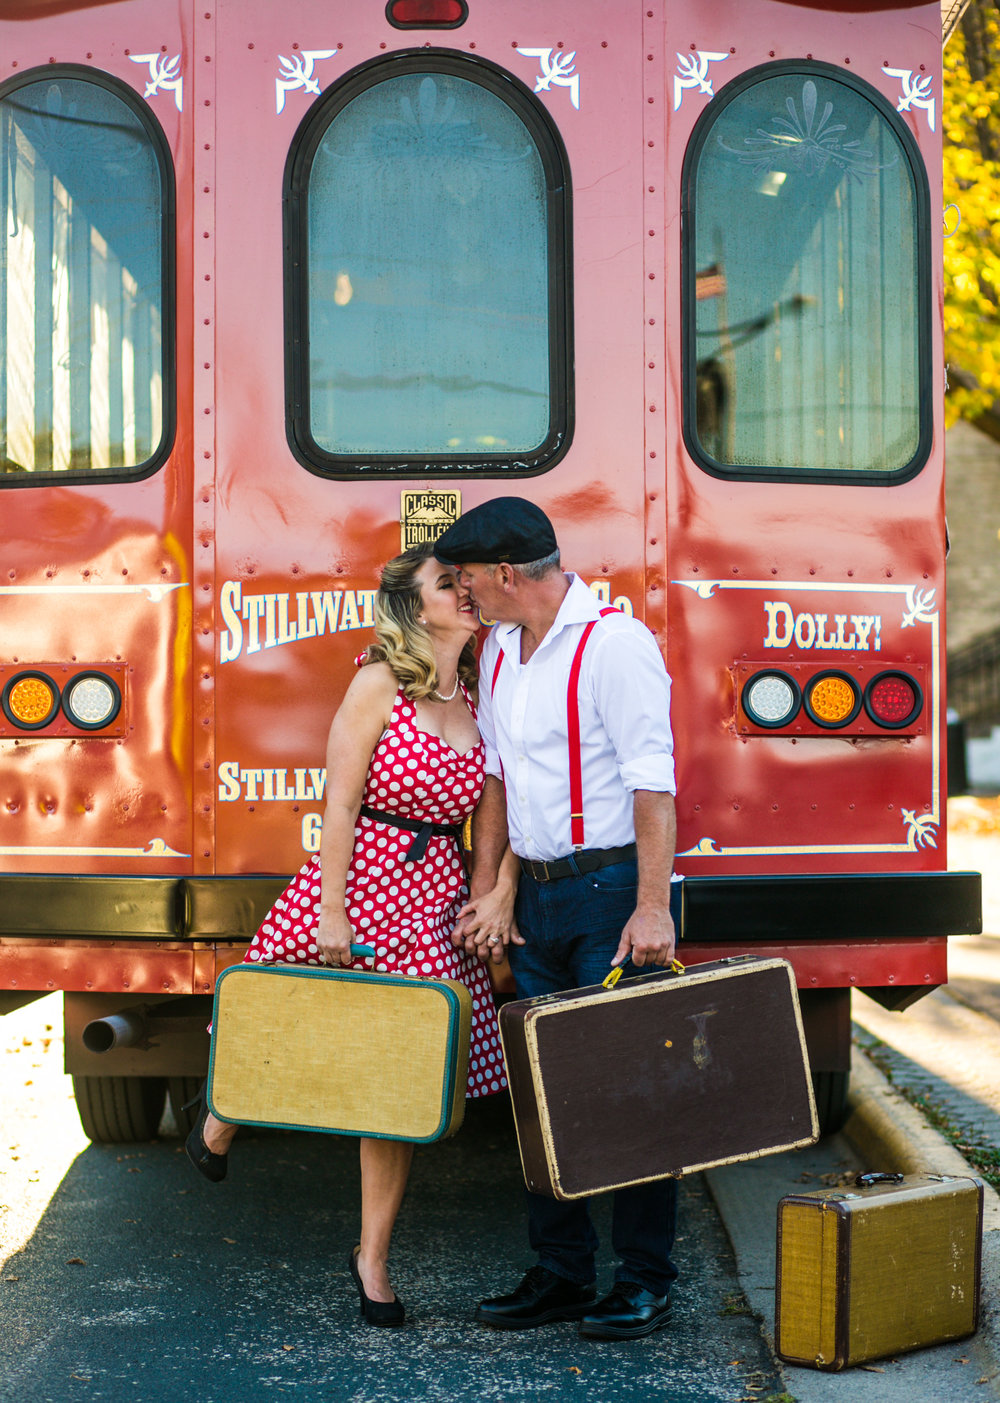 A couple kisses holding suitcases in front of the Stillwater Trolley